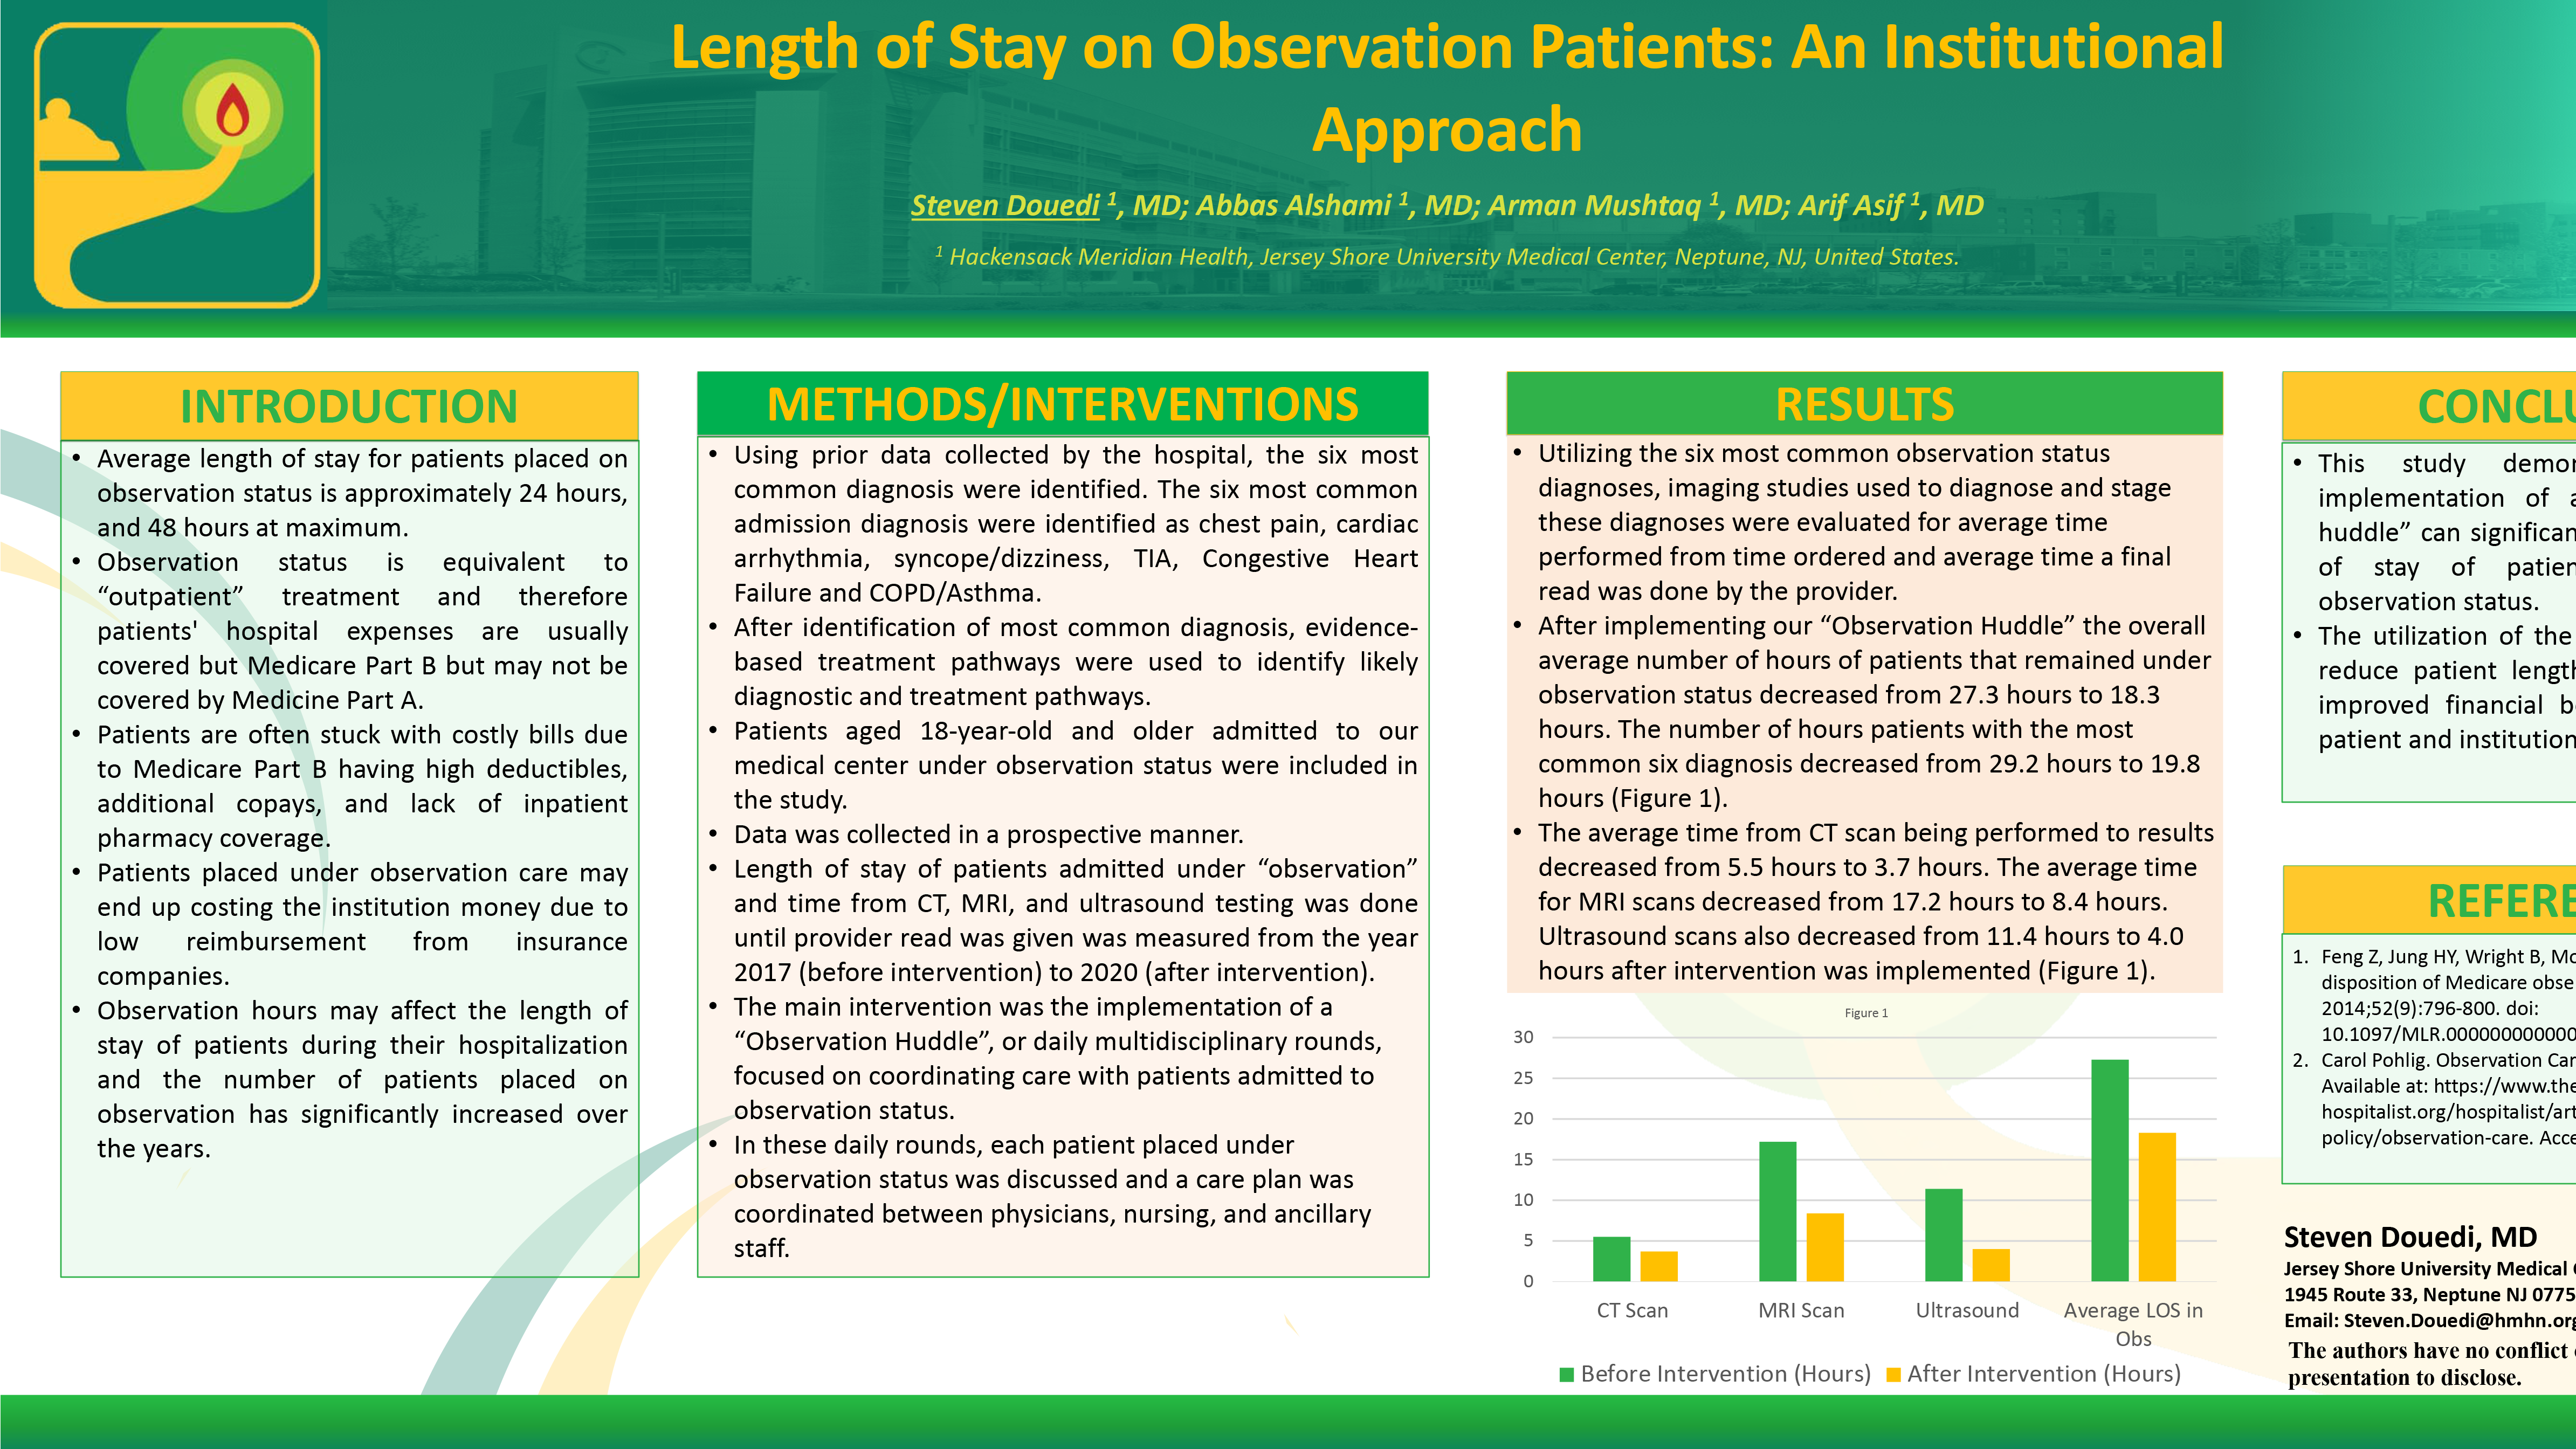 9-Q-2-LOS and Observation Patients An Institutional Approach